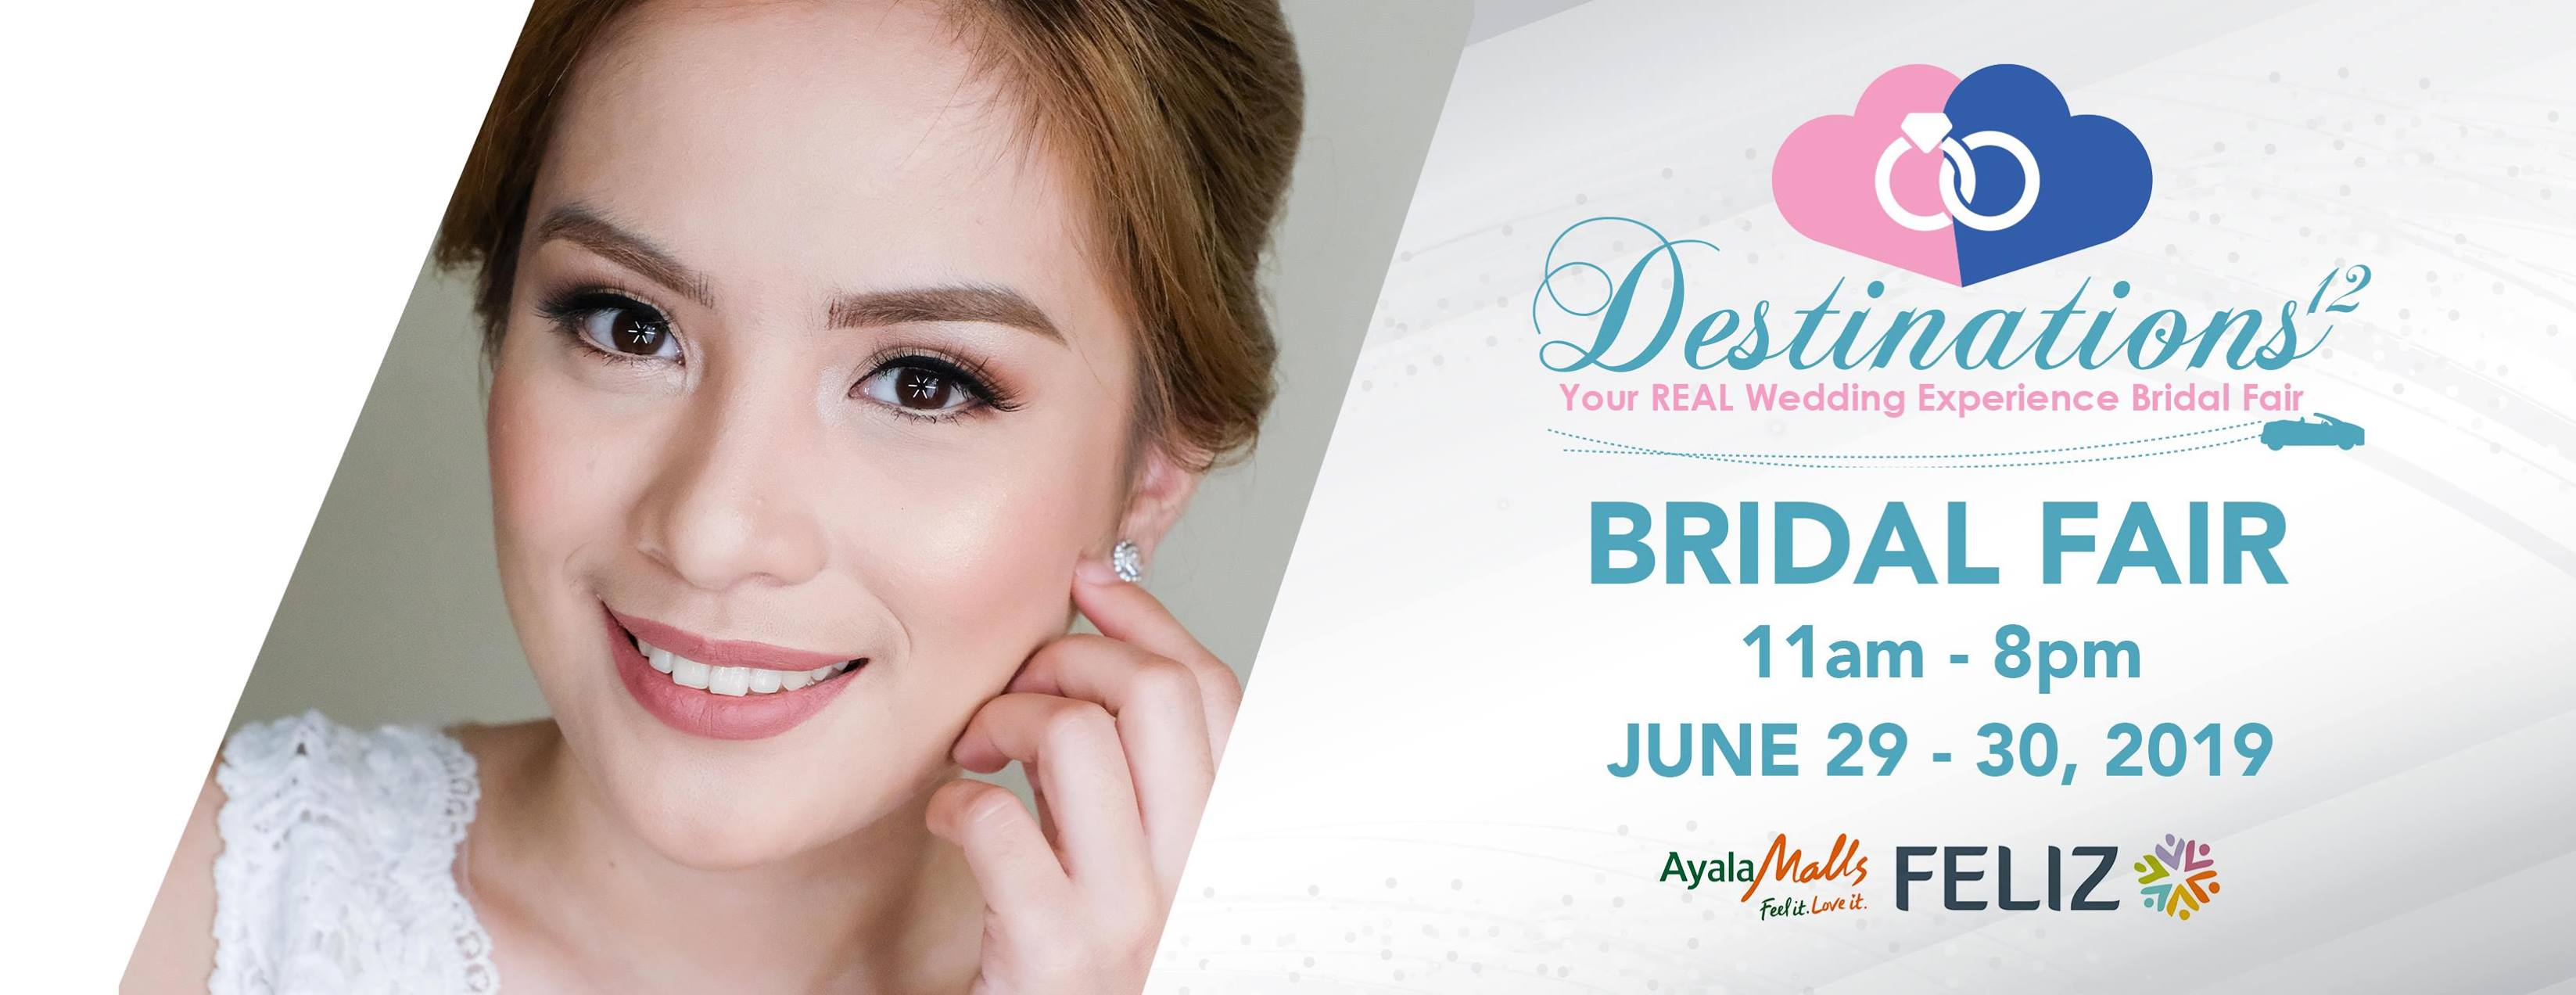 DESTINATIONS 12 BRIDAL FAIR